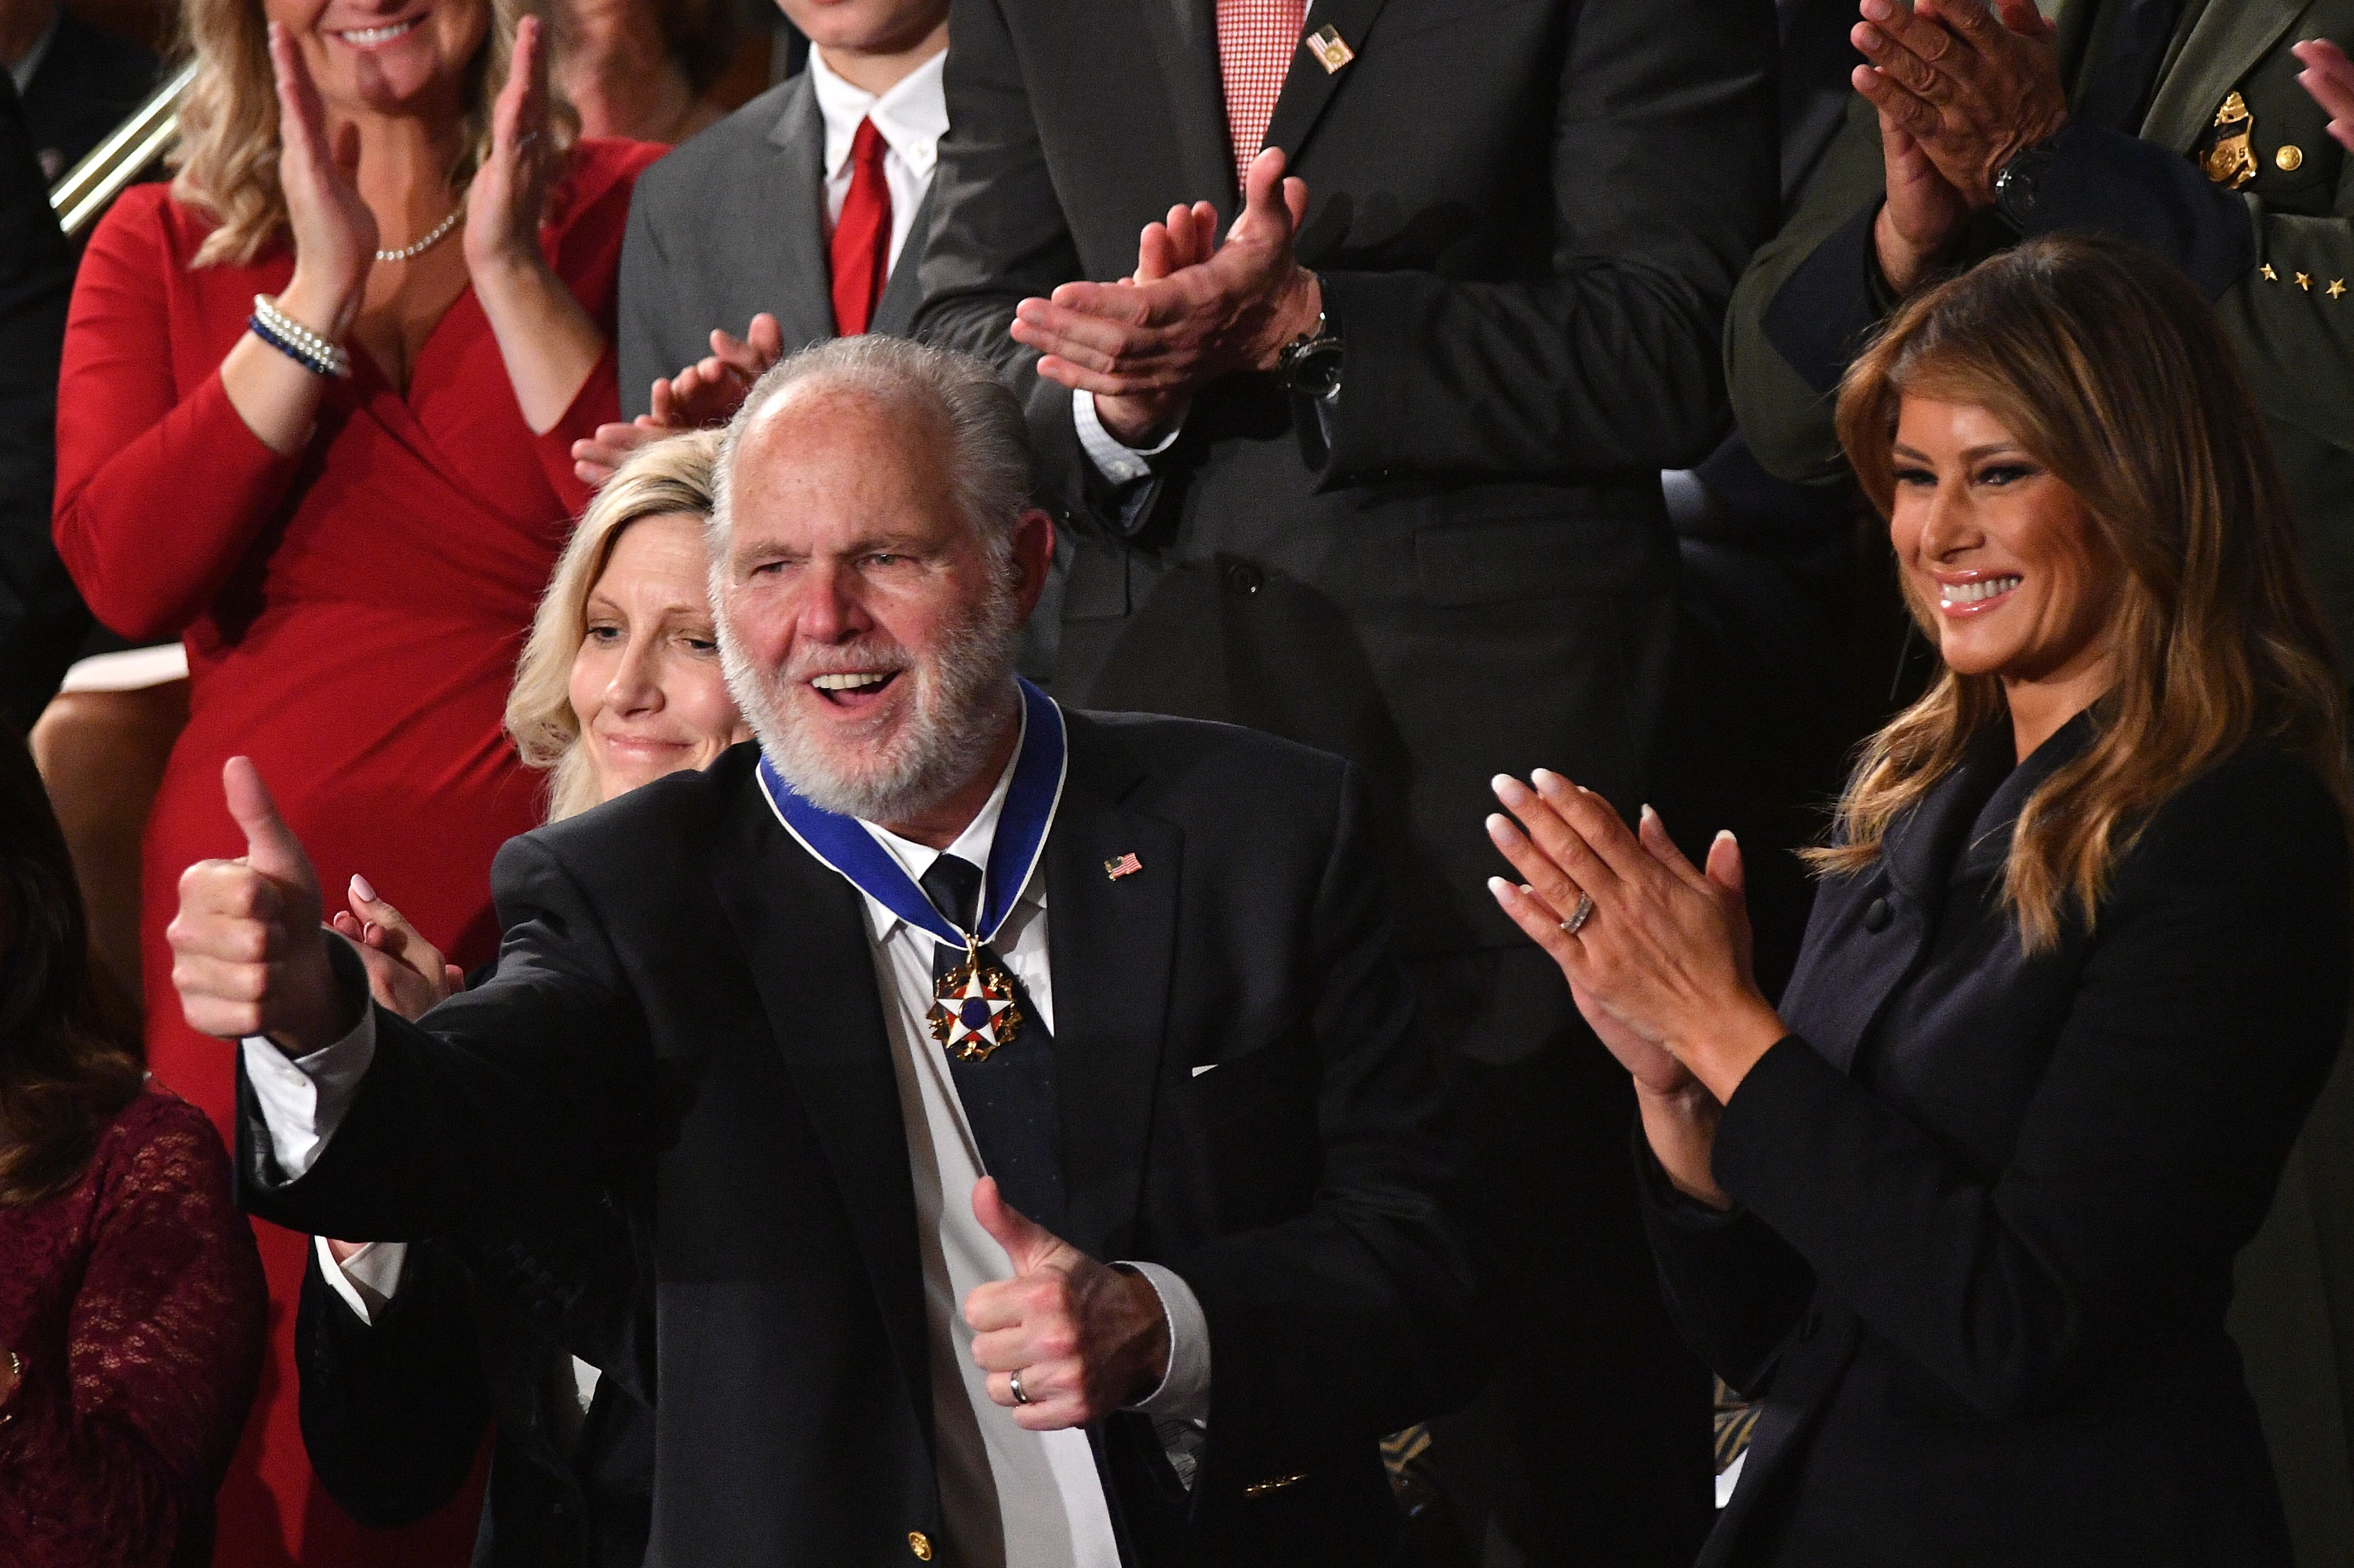 Radio personality Rush Limbaugh pumps thumb after being awarded the Medal of Freedom by First Lady Melania Trump after being acknowledged by US President Donald Trump as he delivers the State of the Union address at the US Capitol in Washington, DC, on February 4, 2020. (MANDEL NGAN/AFP via Getty Images)